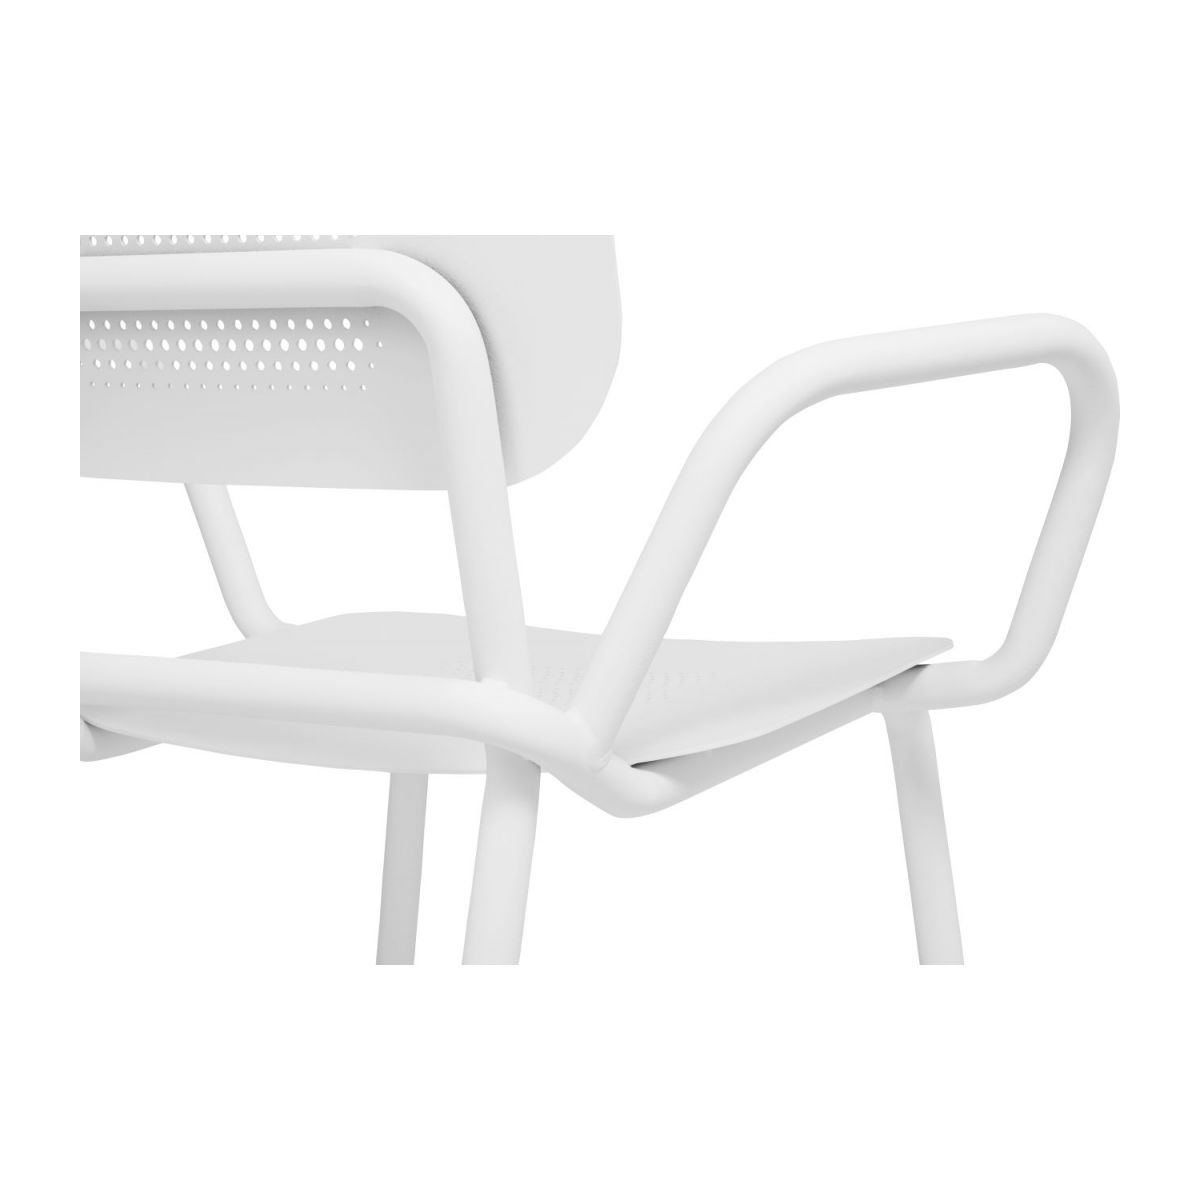 Garden chair with armrests n°9